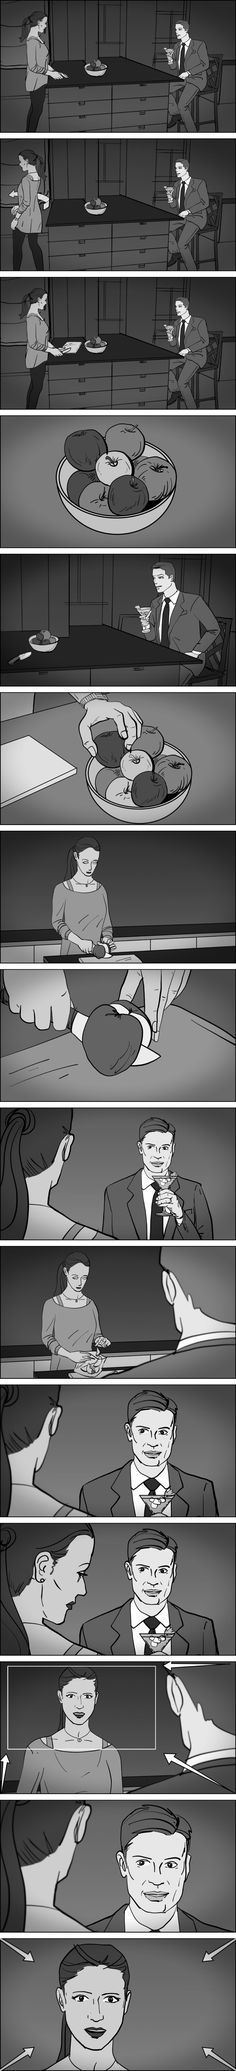 Got A Script? I'll Storyboard It. Storyboard sequence. Storyboards by storyboard artist Cuong Huynh.